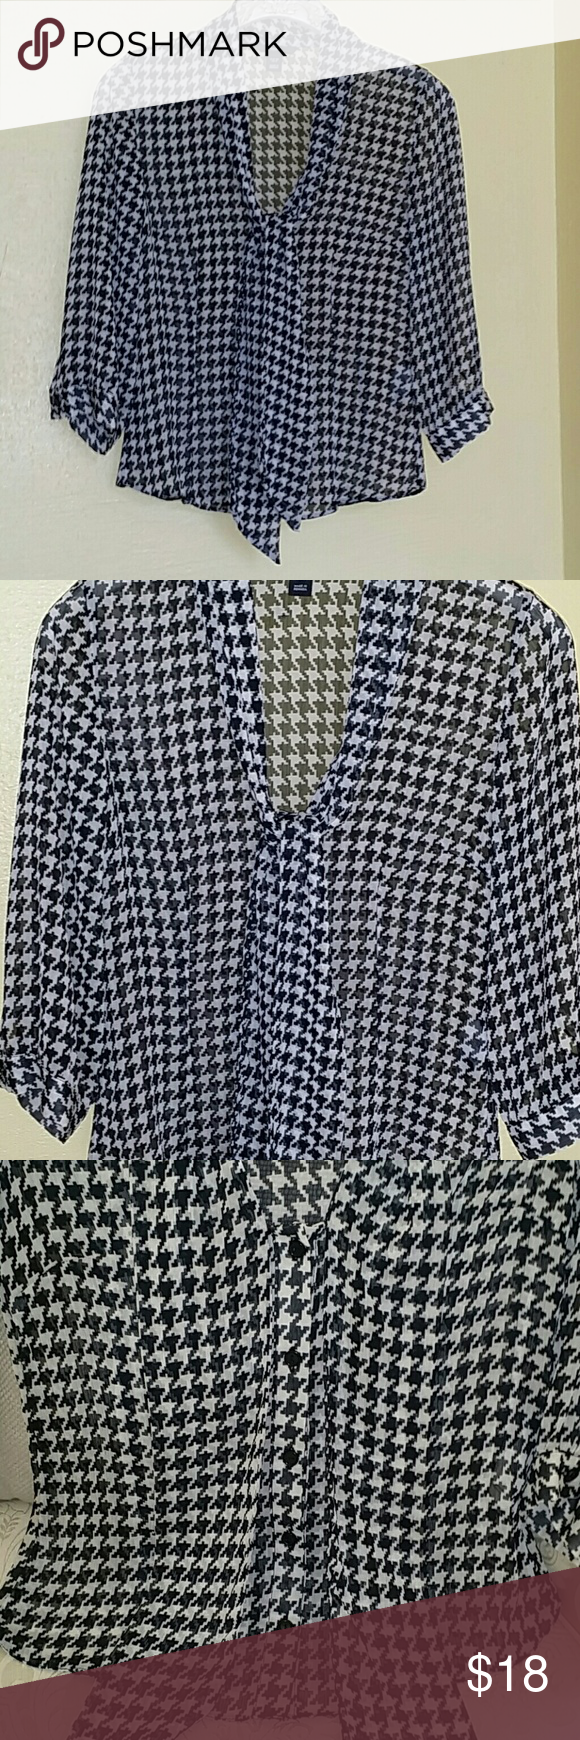 H&M Top H&M Top  100 % Polyester 3 / 4 sleeves H&M Tops Blouses